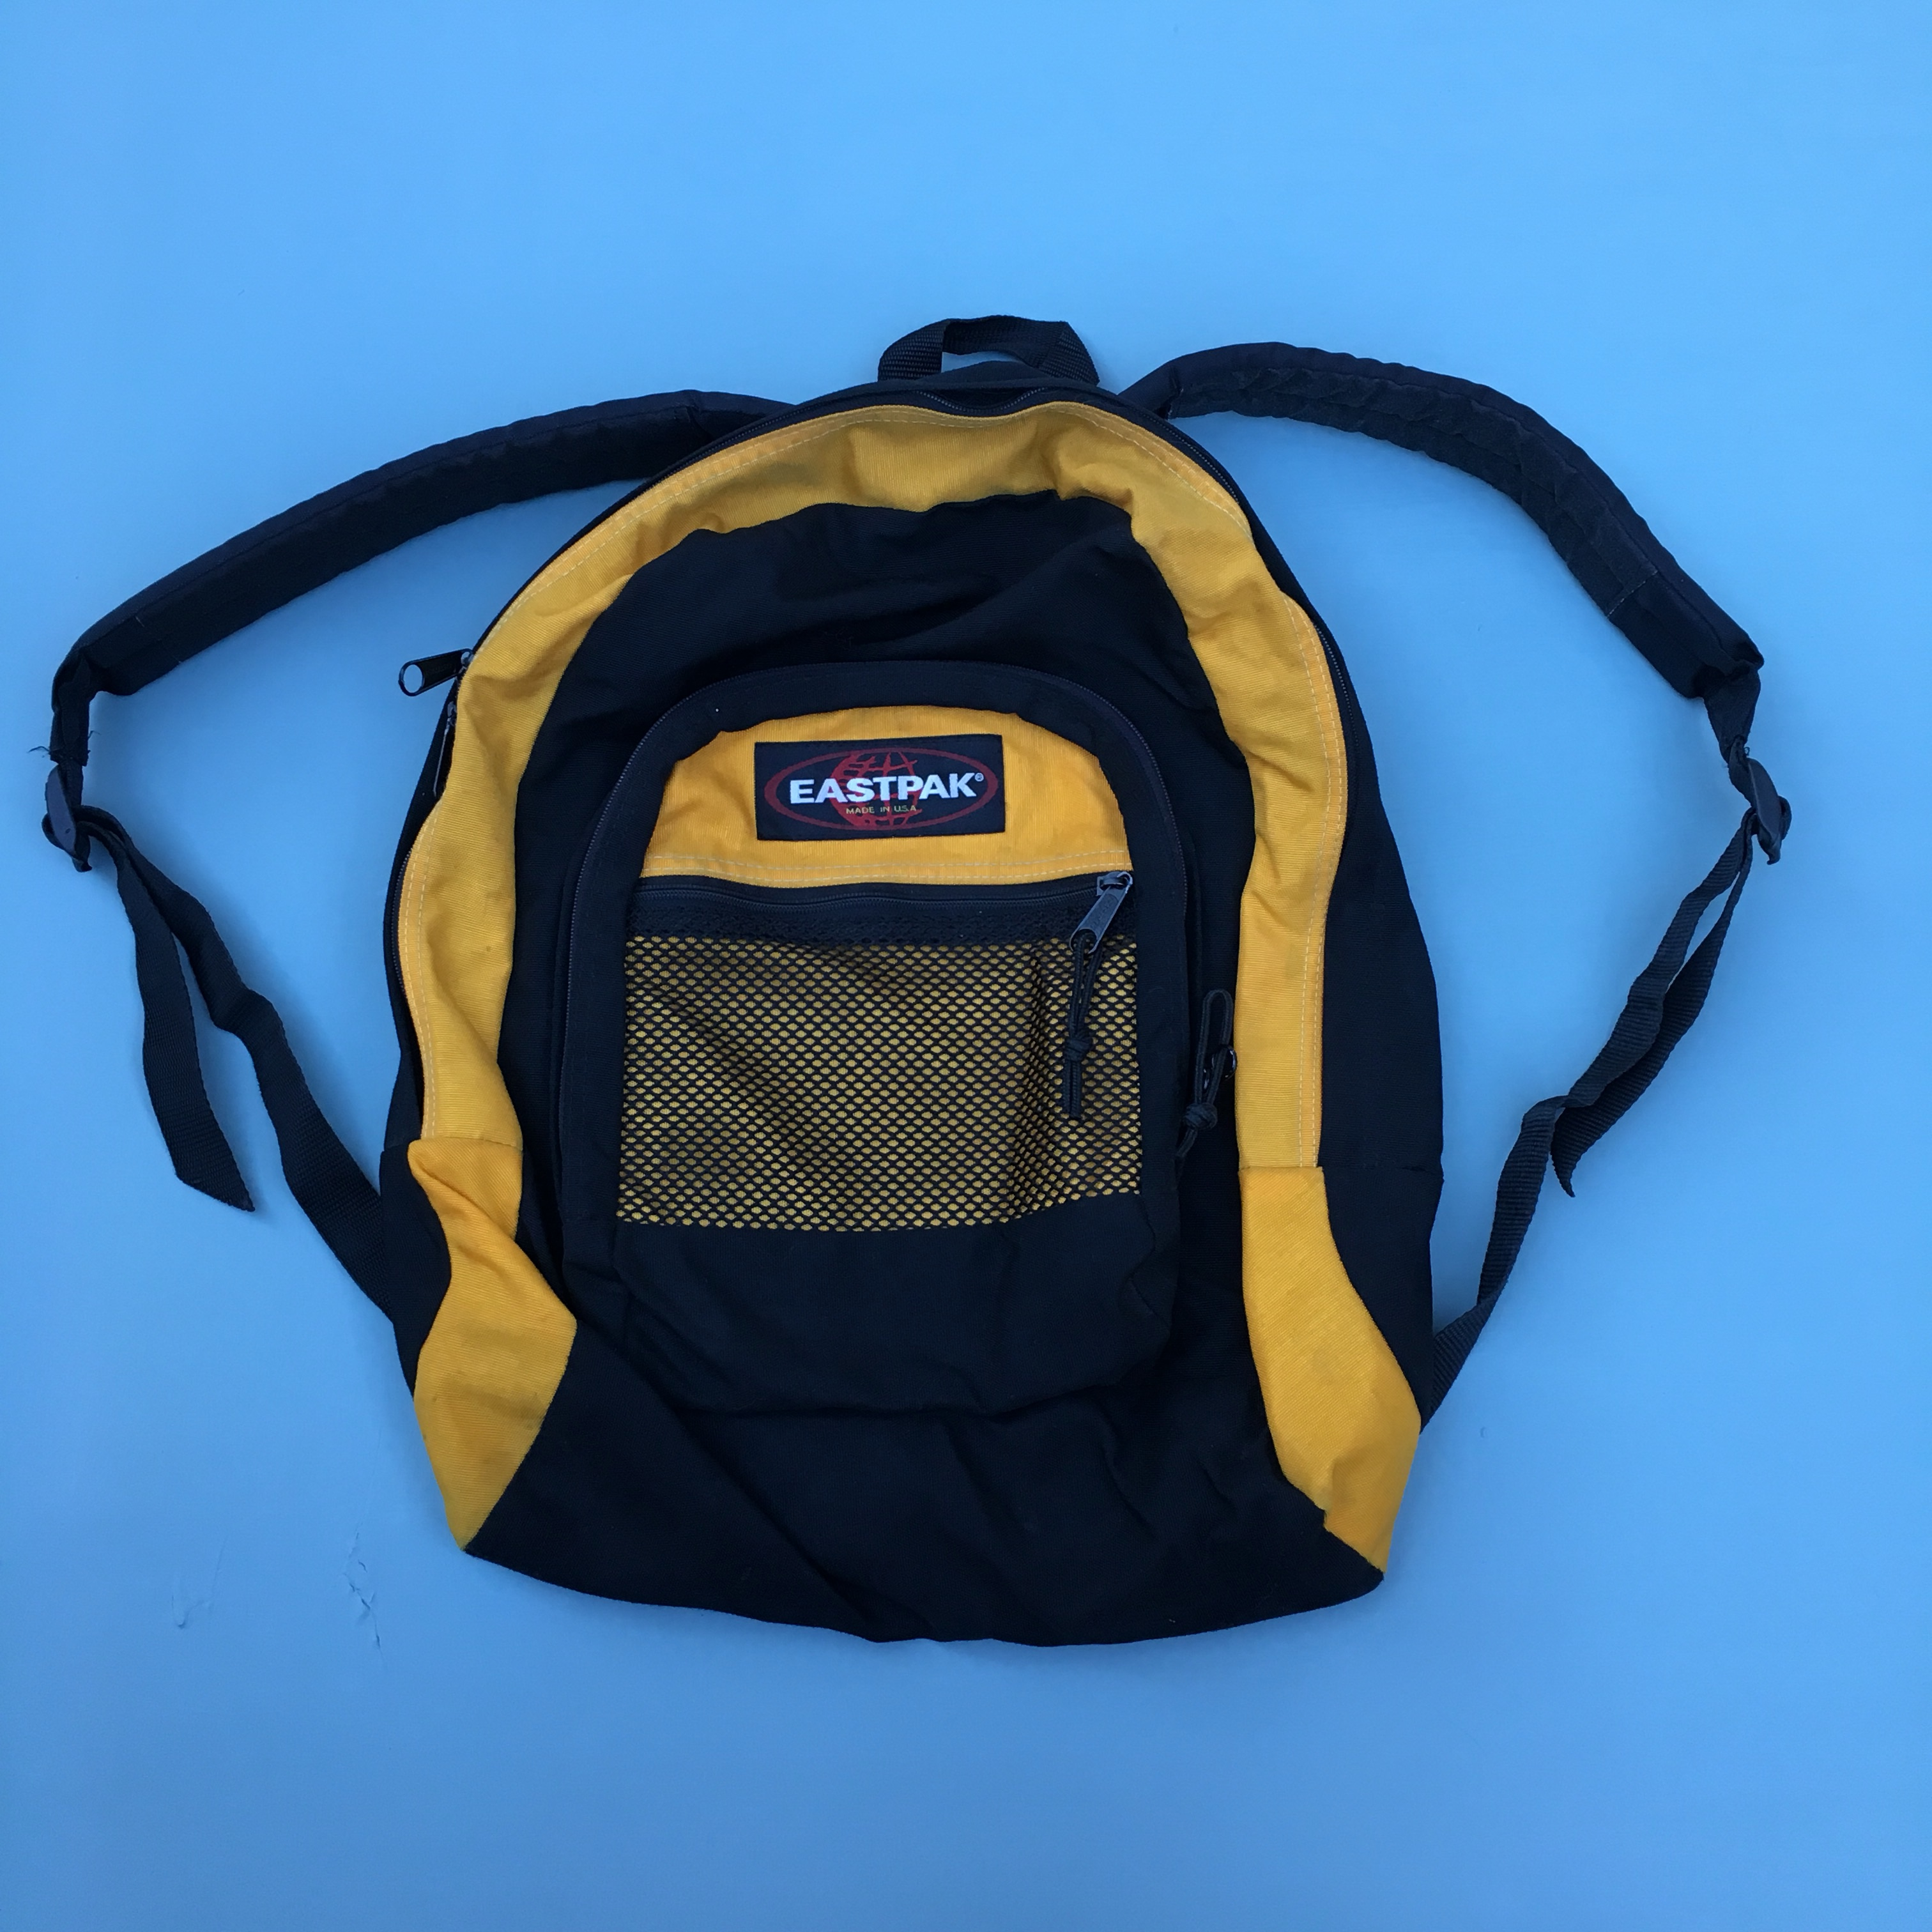 Eastpak backpack in black and yellow  Made in USA     - Depop